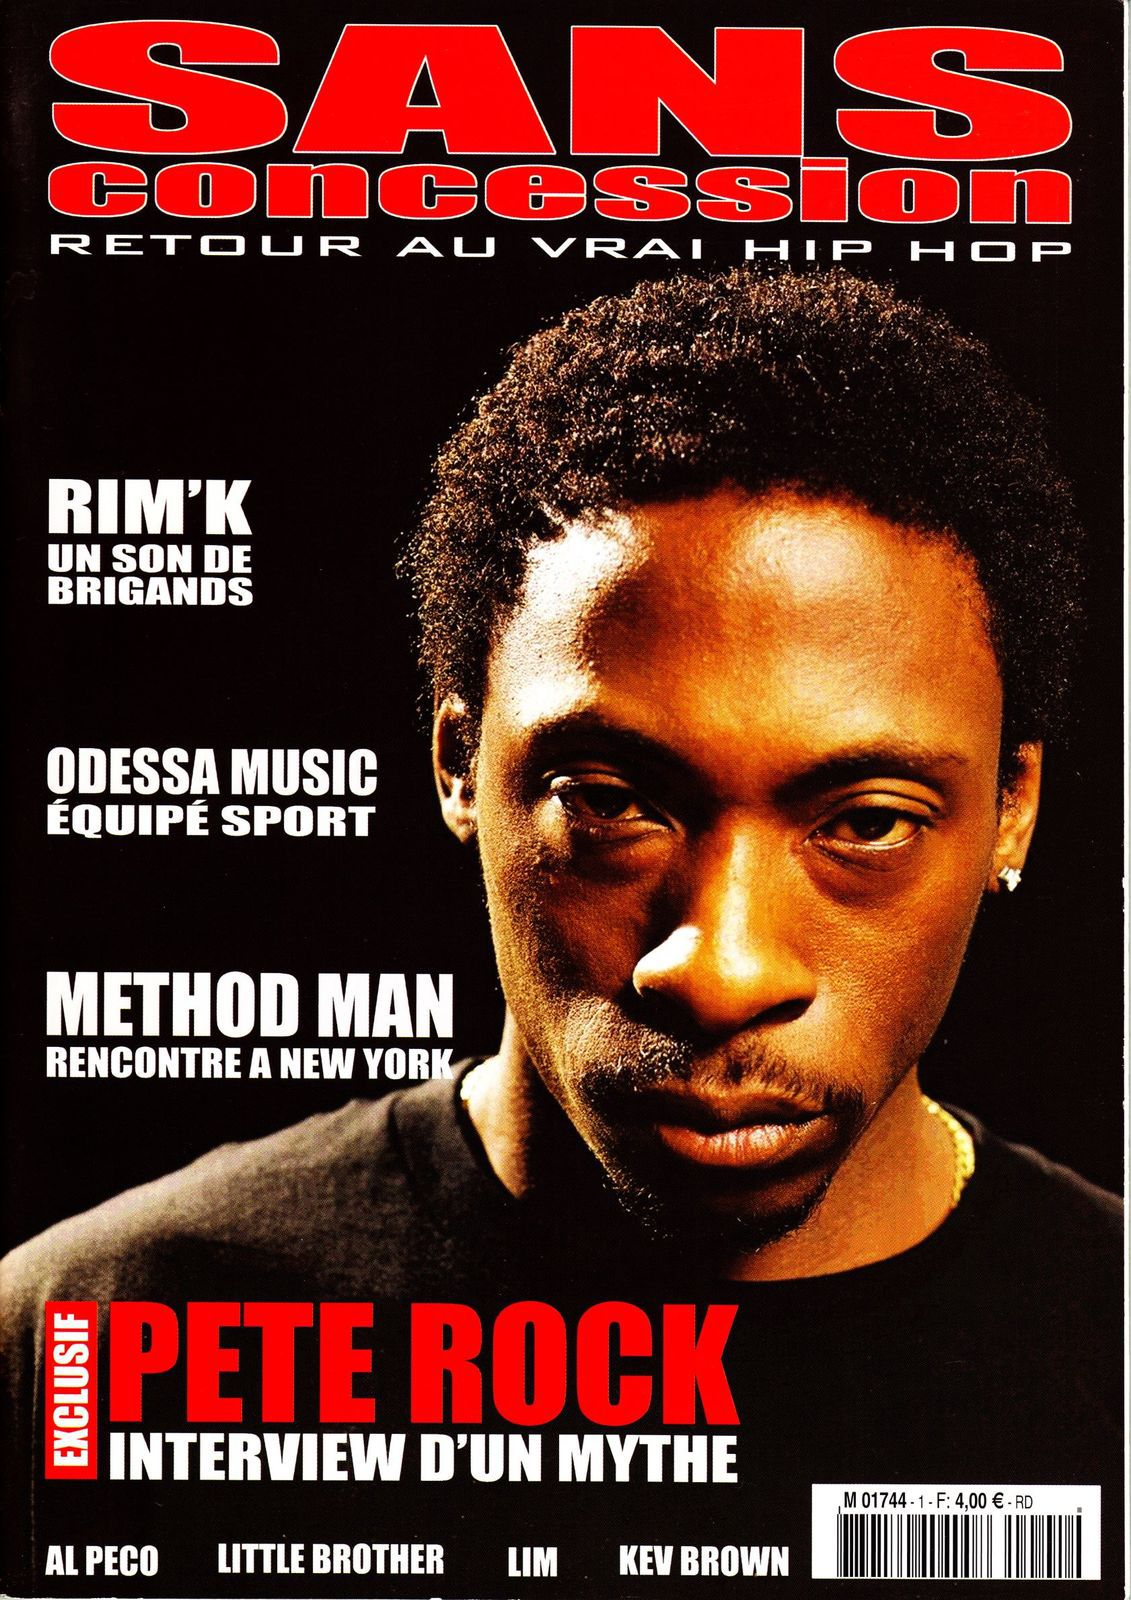 Pete Rock, Rim'K (113), Odessa Music et Method Man - Sans concession (fanzine hip-hop) - le rap c'était mieux avant